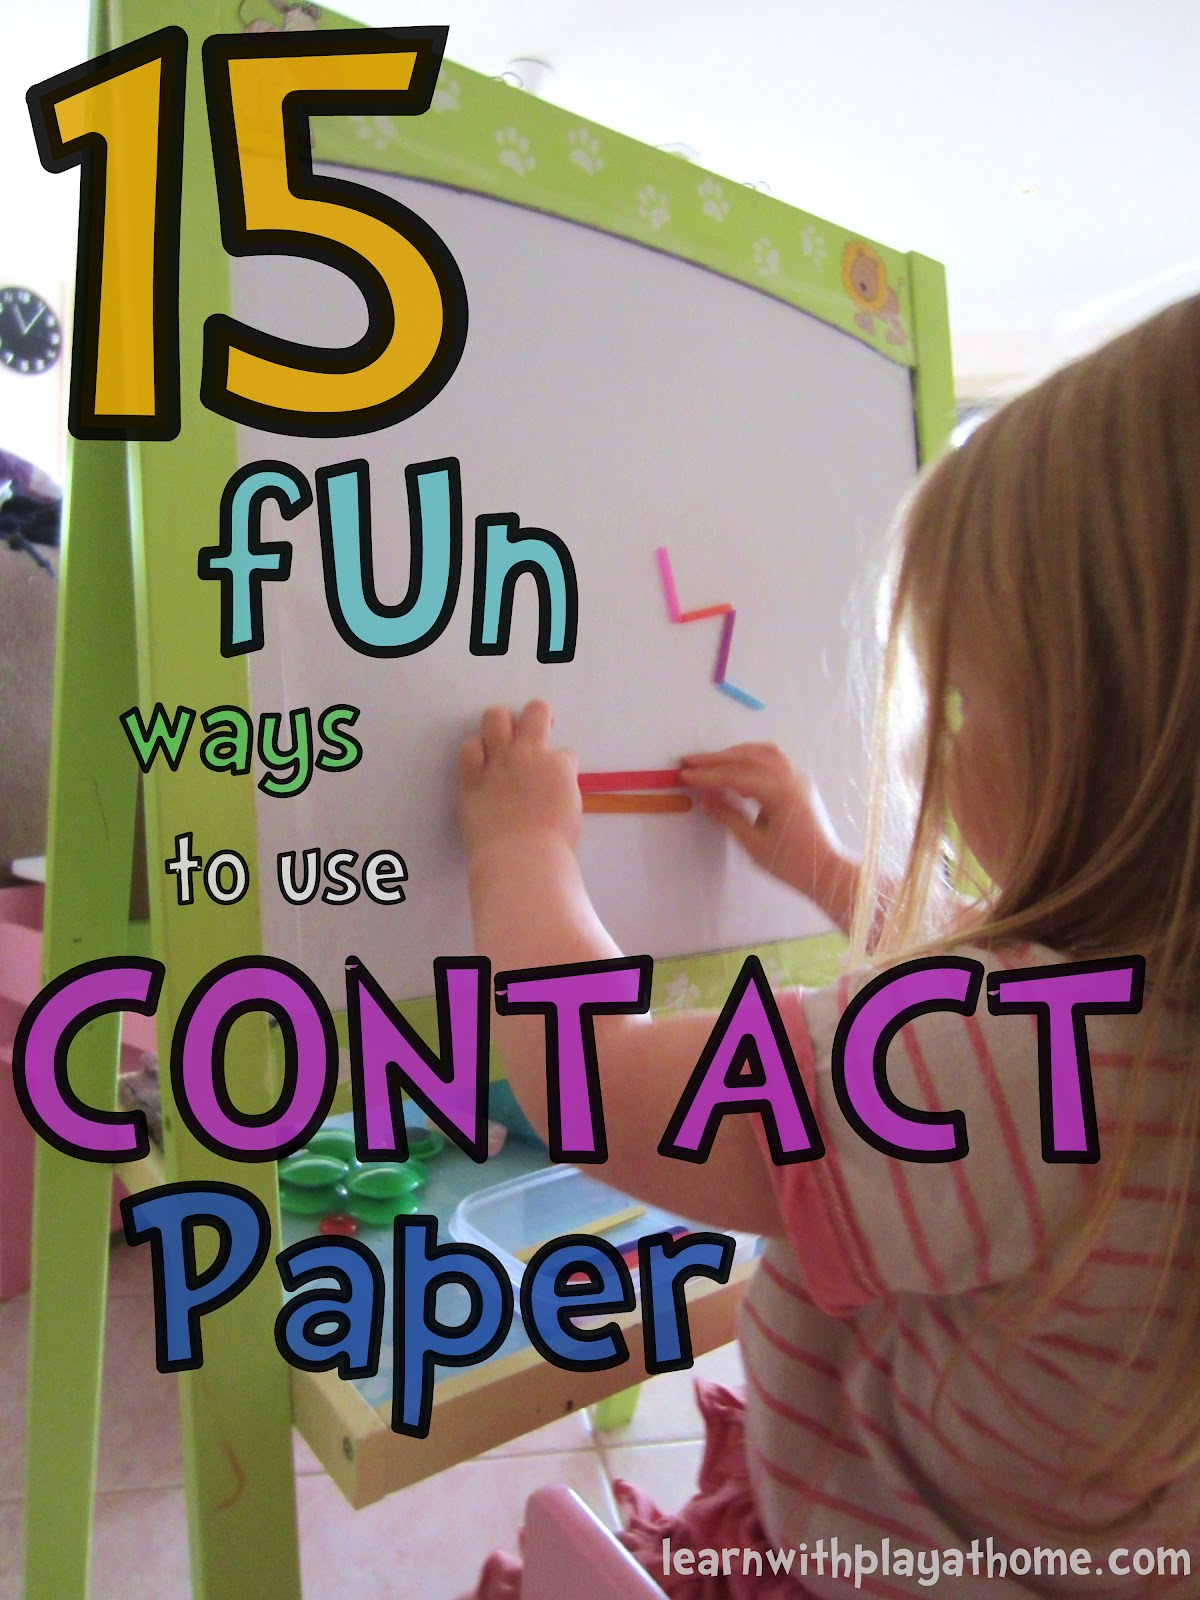 Sticky paper for crafts - Sticky Easel Contact Paper Activity